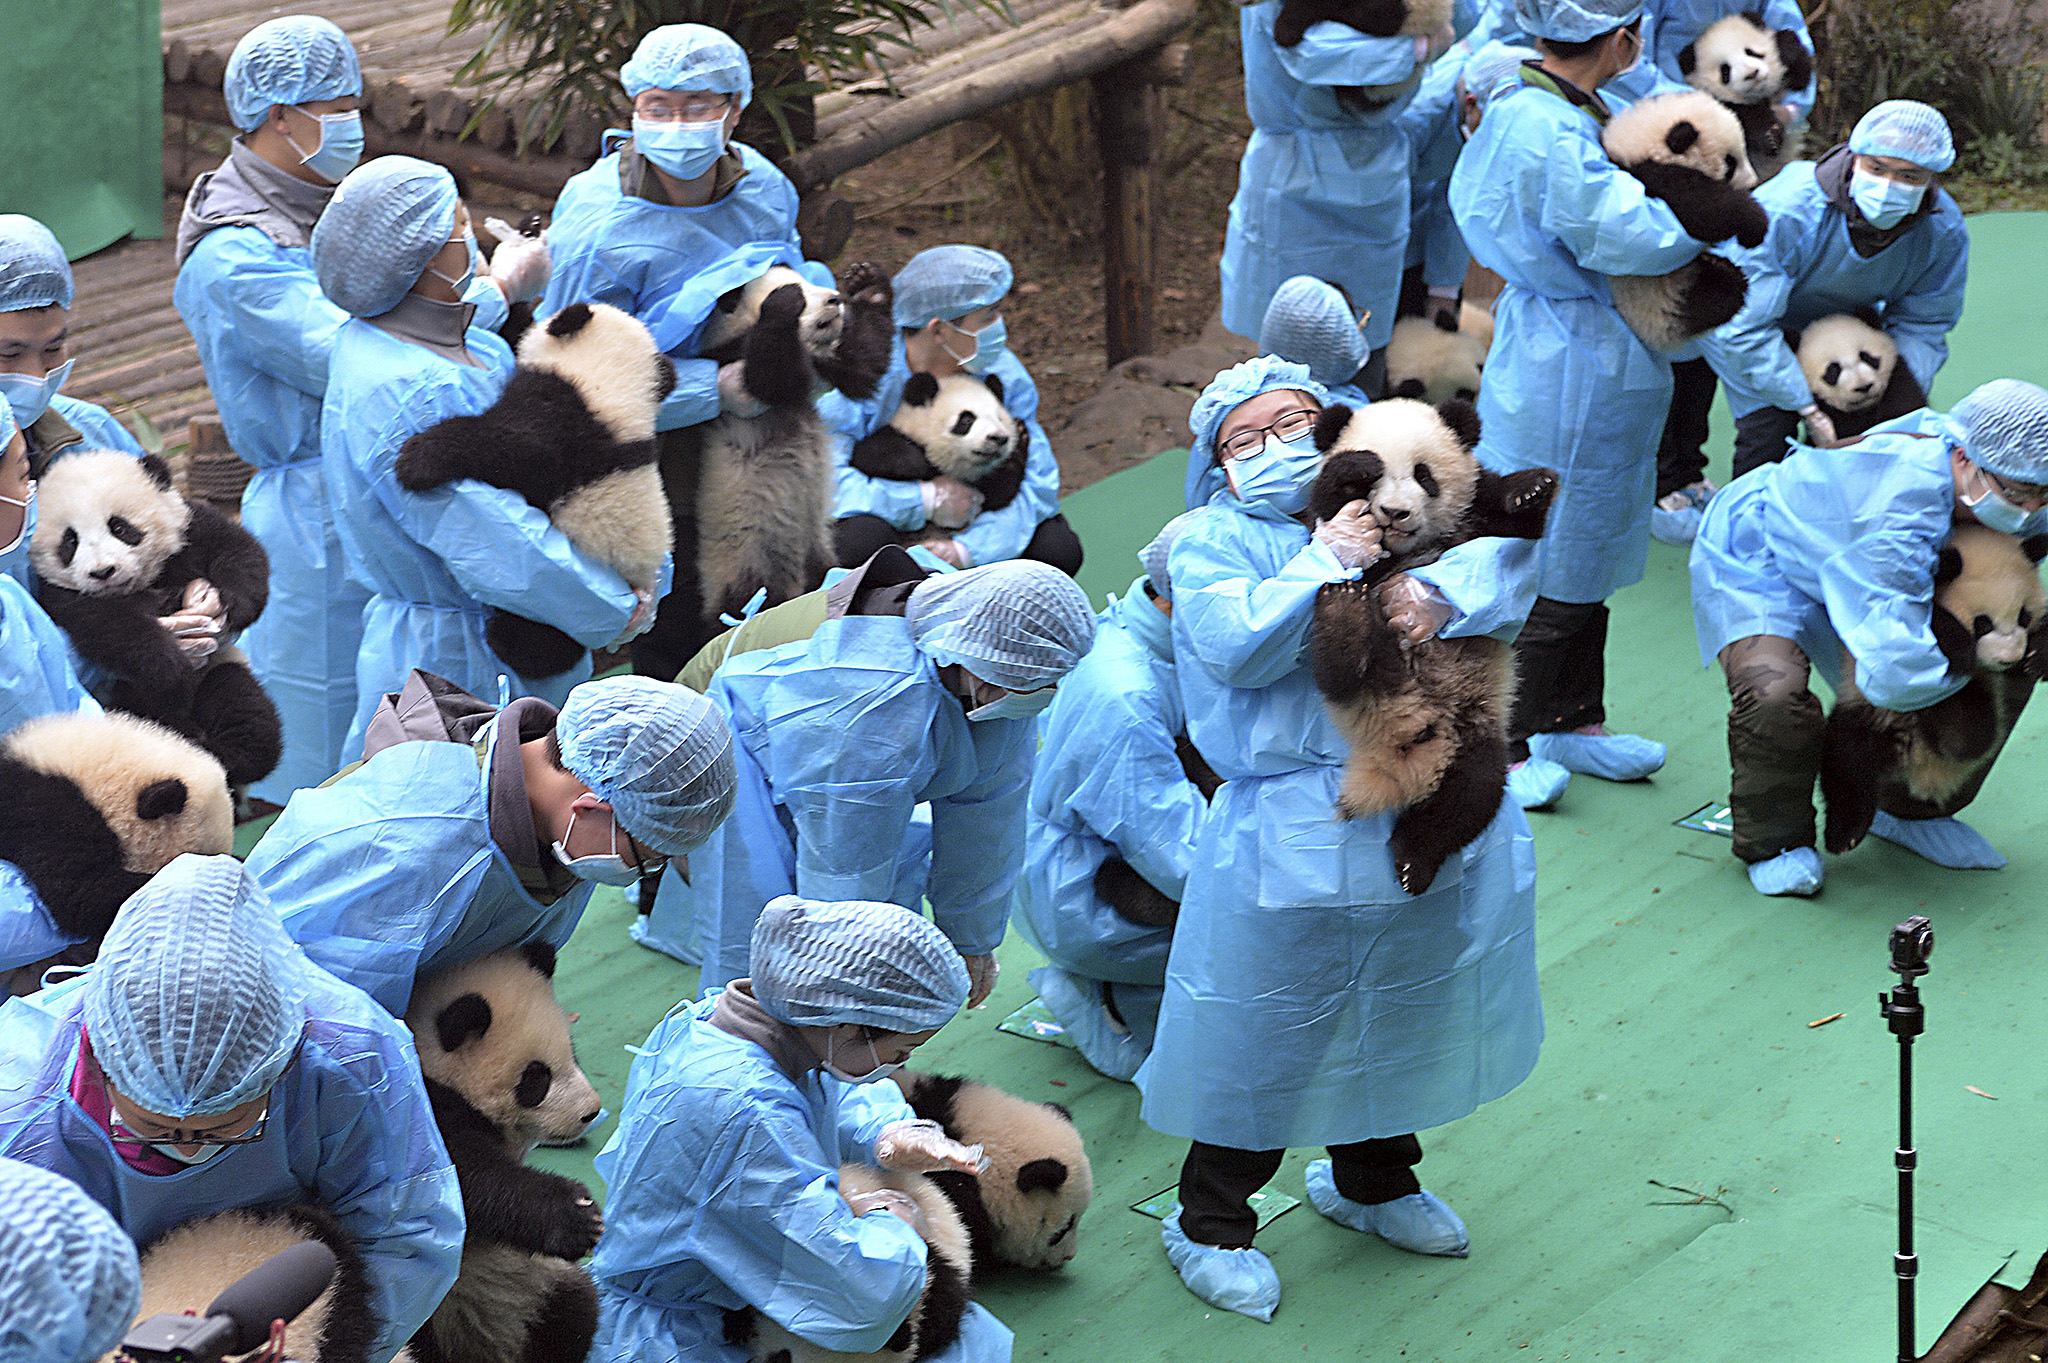 Staff members hold 23 panda cubs born in 2016 at the Chengdu Panda Breeding Base for a group photo to ring in the coming Chinese Lunar New Year in Chengdu, southwest China's Sichuan province, Friday Jan. 20, 2017. (Chinatopix Via AP)